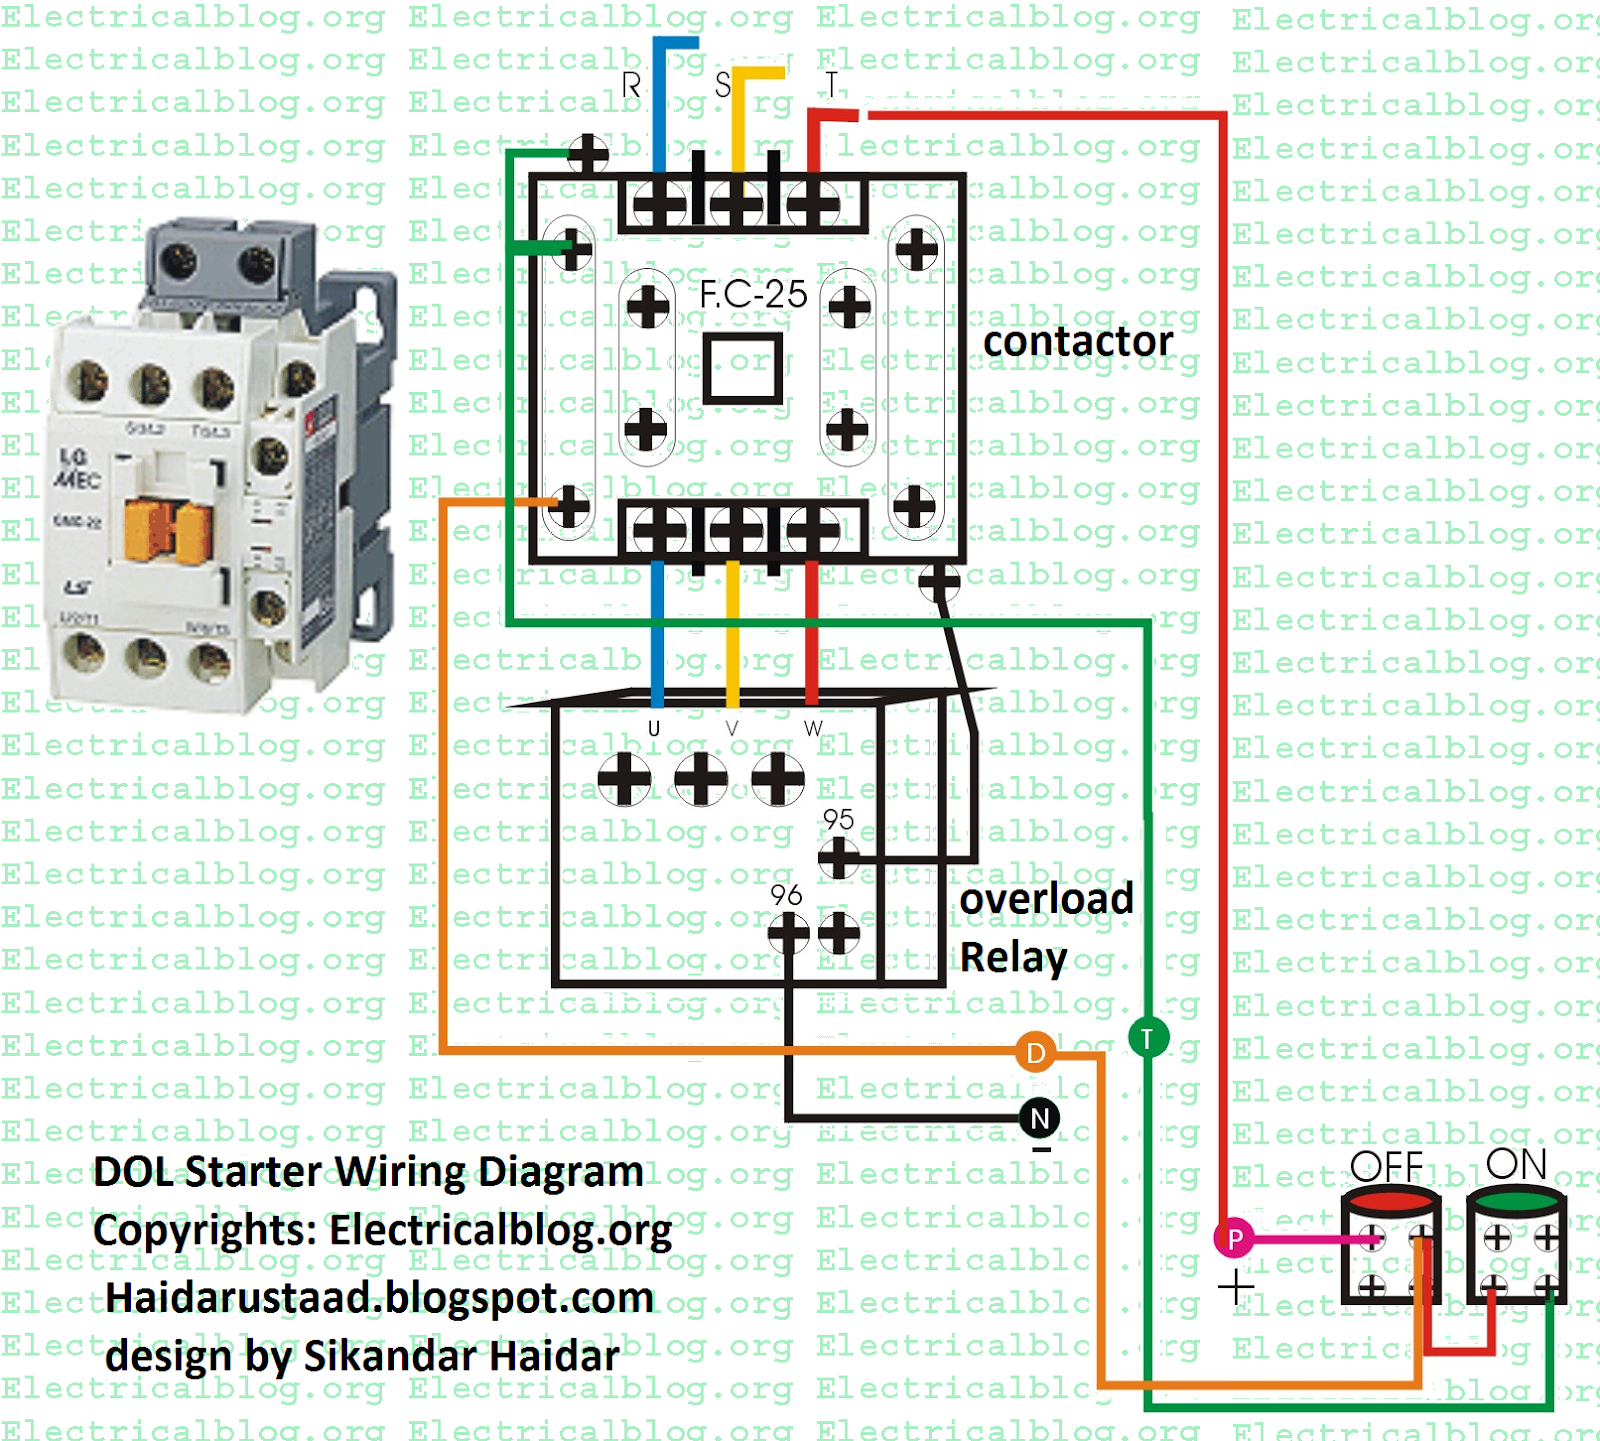 Direct Online Starter Wiring Diagram  U00ab Electrical And